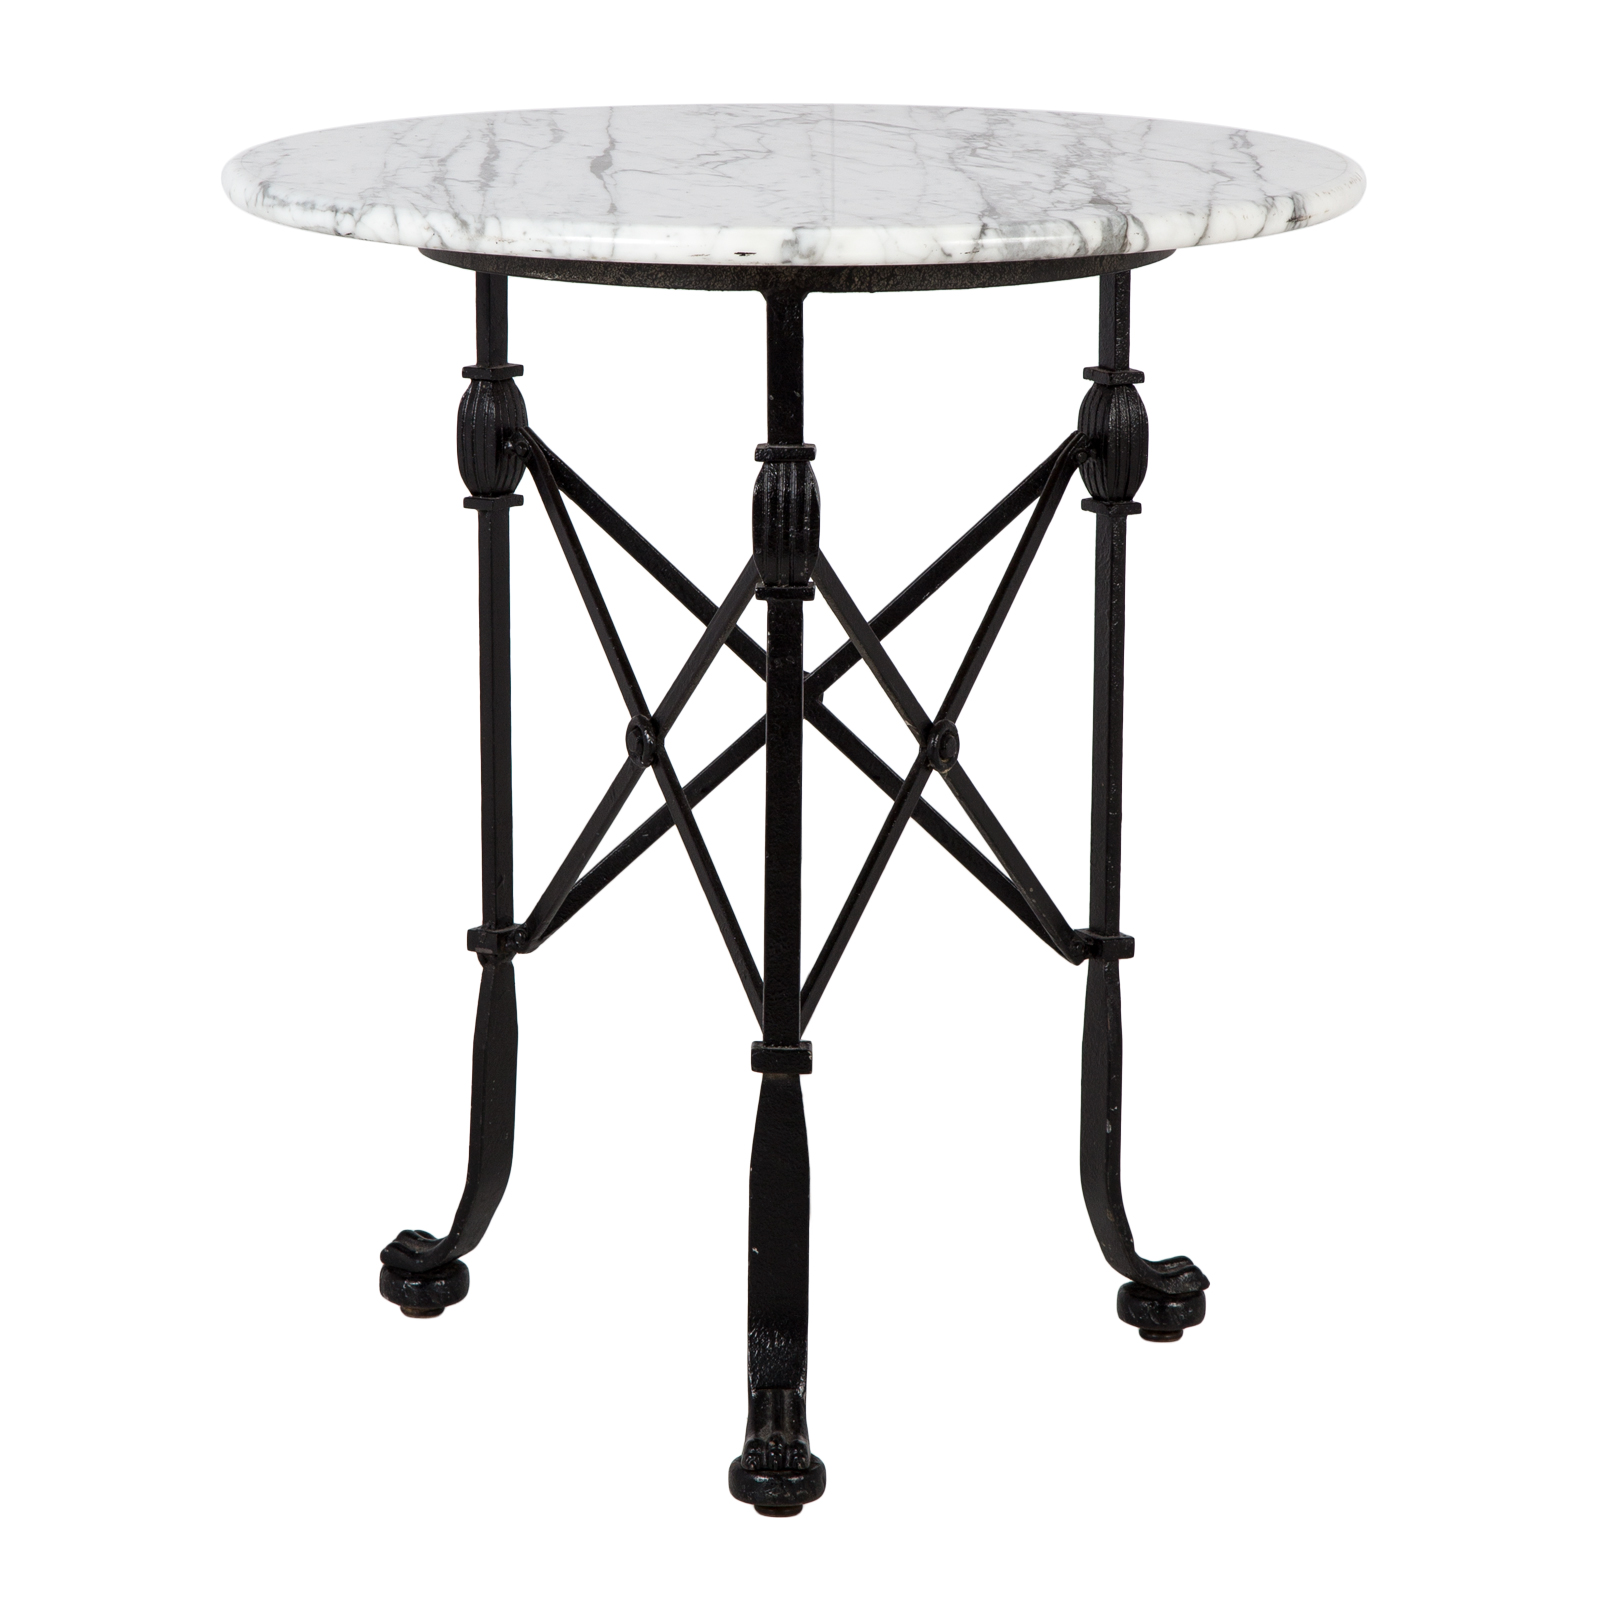 marble side table rentals event furniture rental corvus tall top feature outdoor bedroom dinette and patio edmonton plastic umbrella bassett end tables accent farmhouse mint green